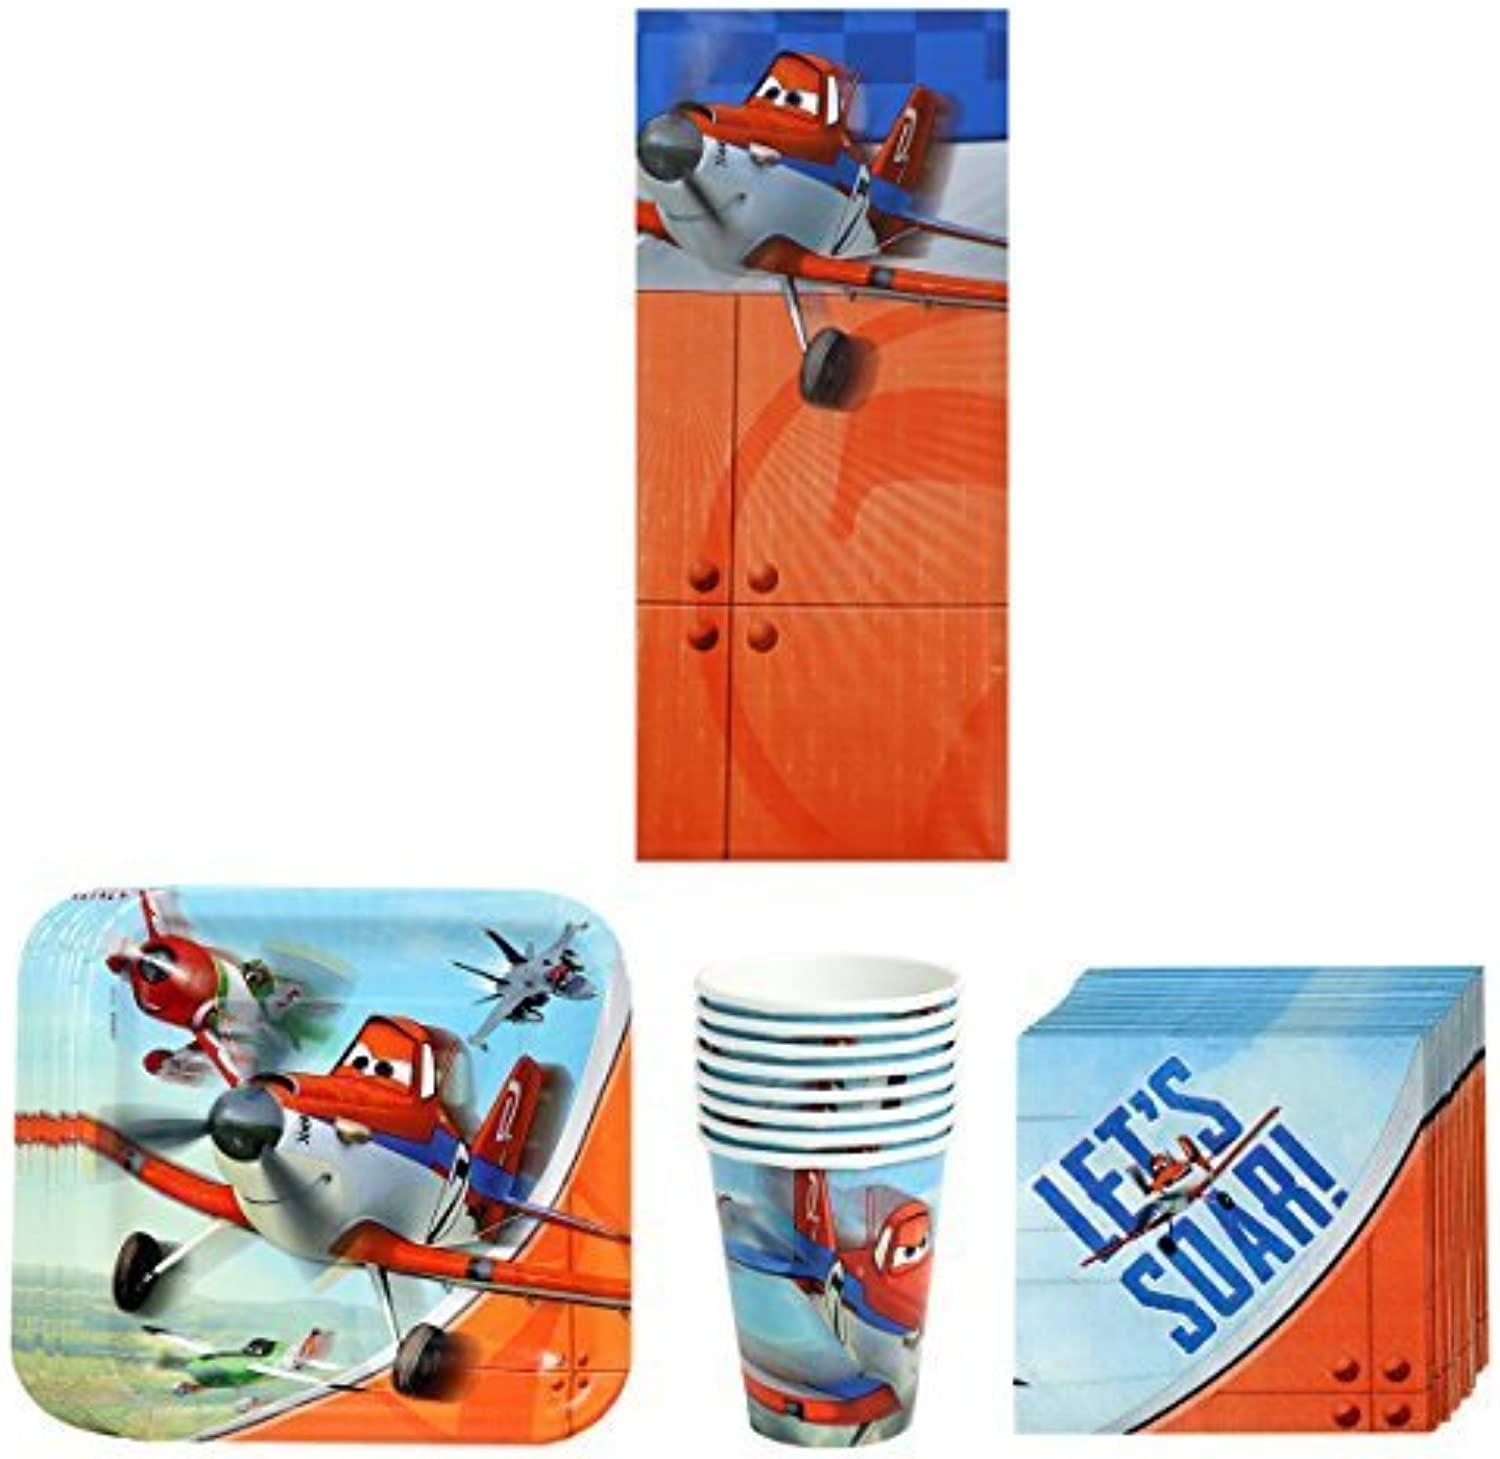 Disney Planes Dusty and Friends Birthday Party Supplies Pack Bundle Kit Including Plates, Cups, Napkins and Tablecover  8 Guests by Disney